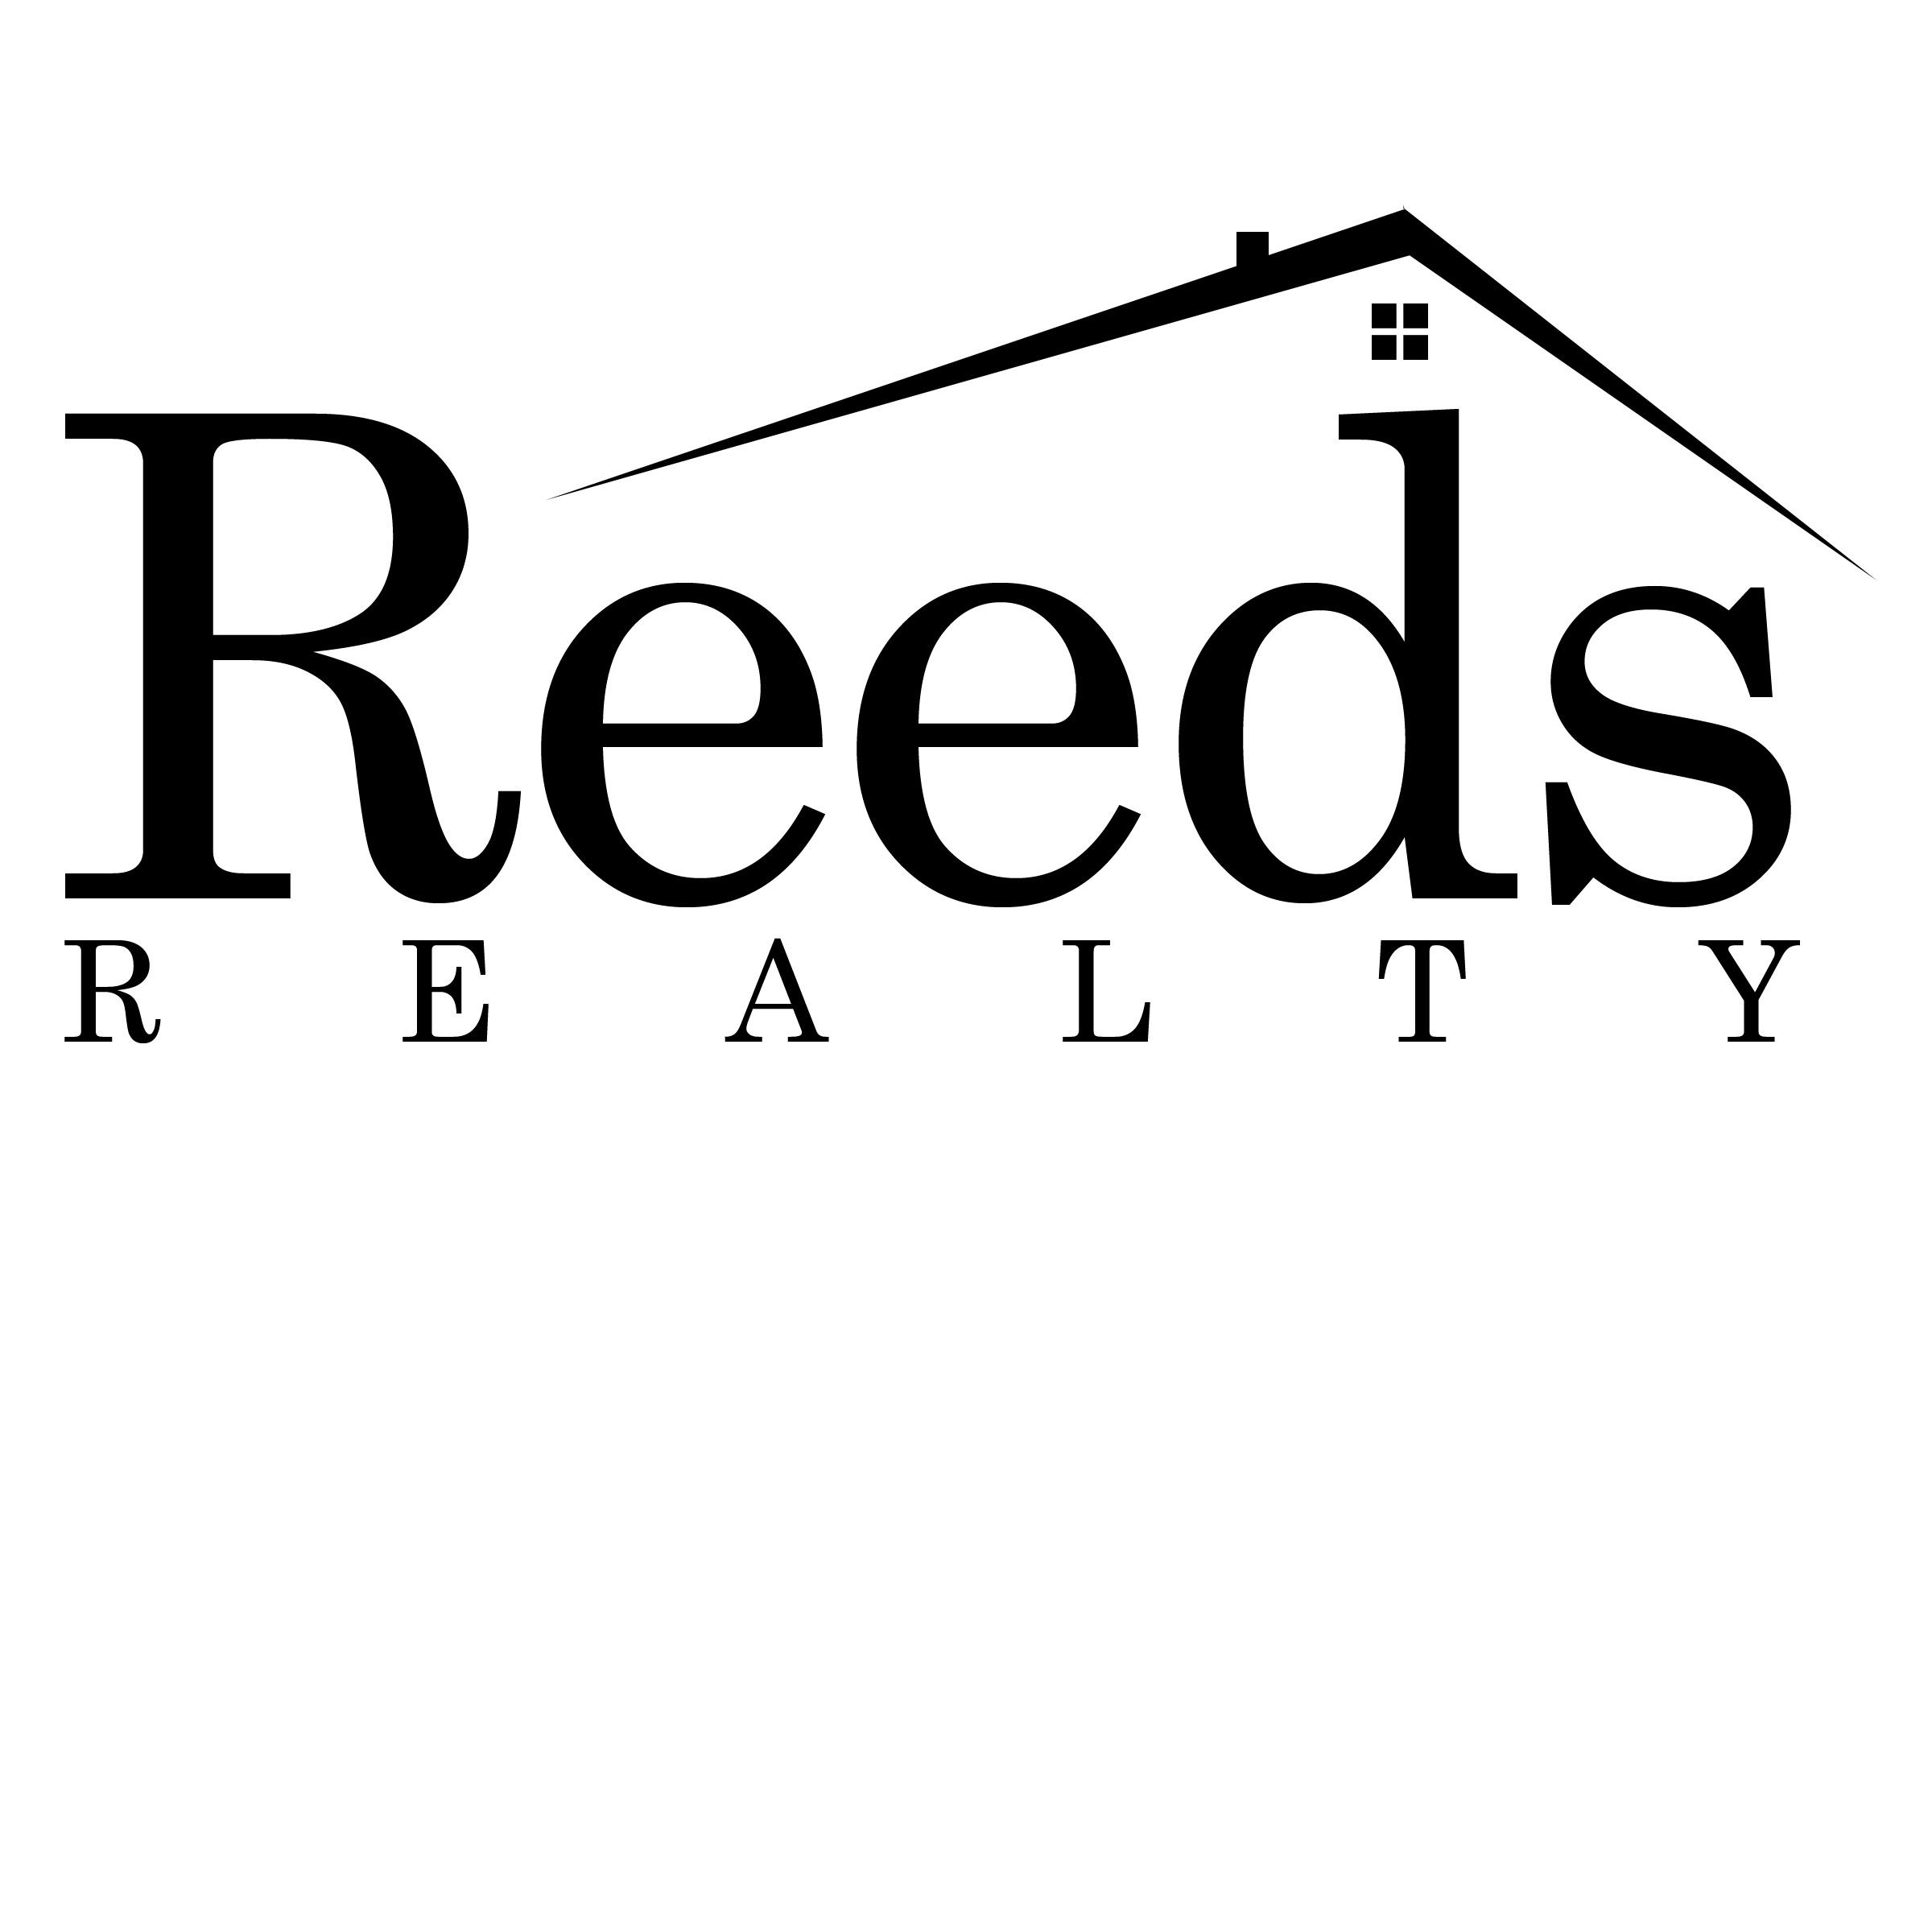 Reeds Realty Inc.